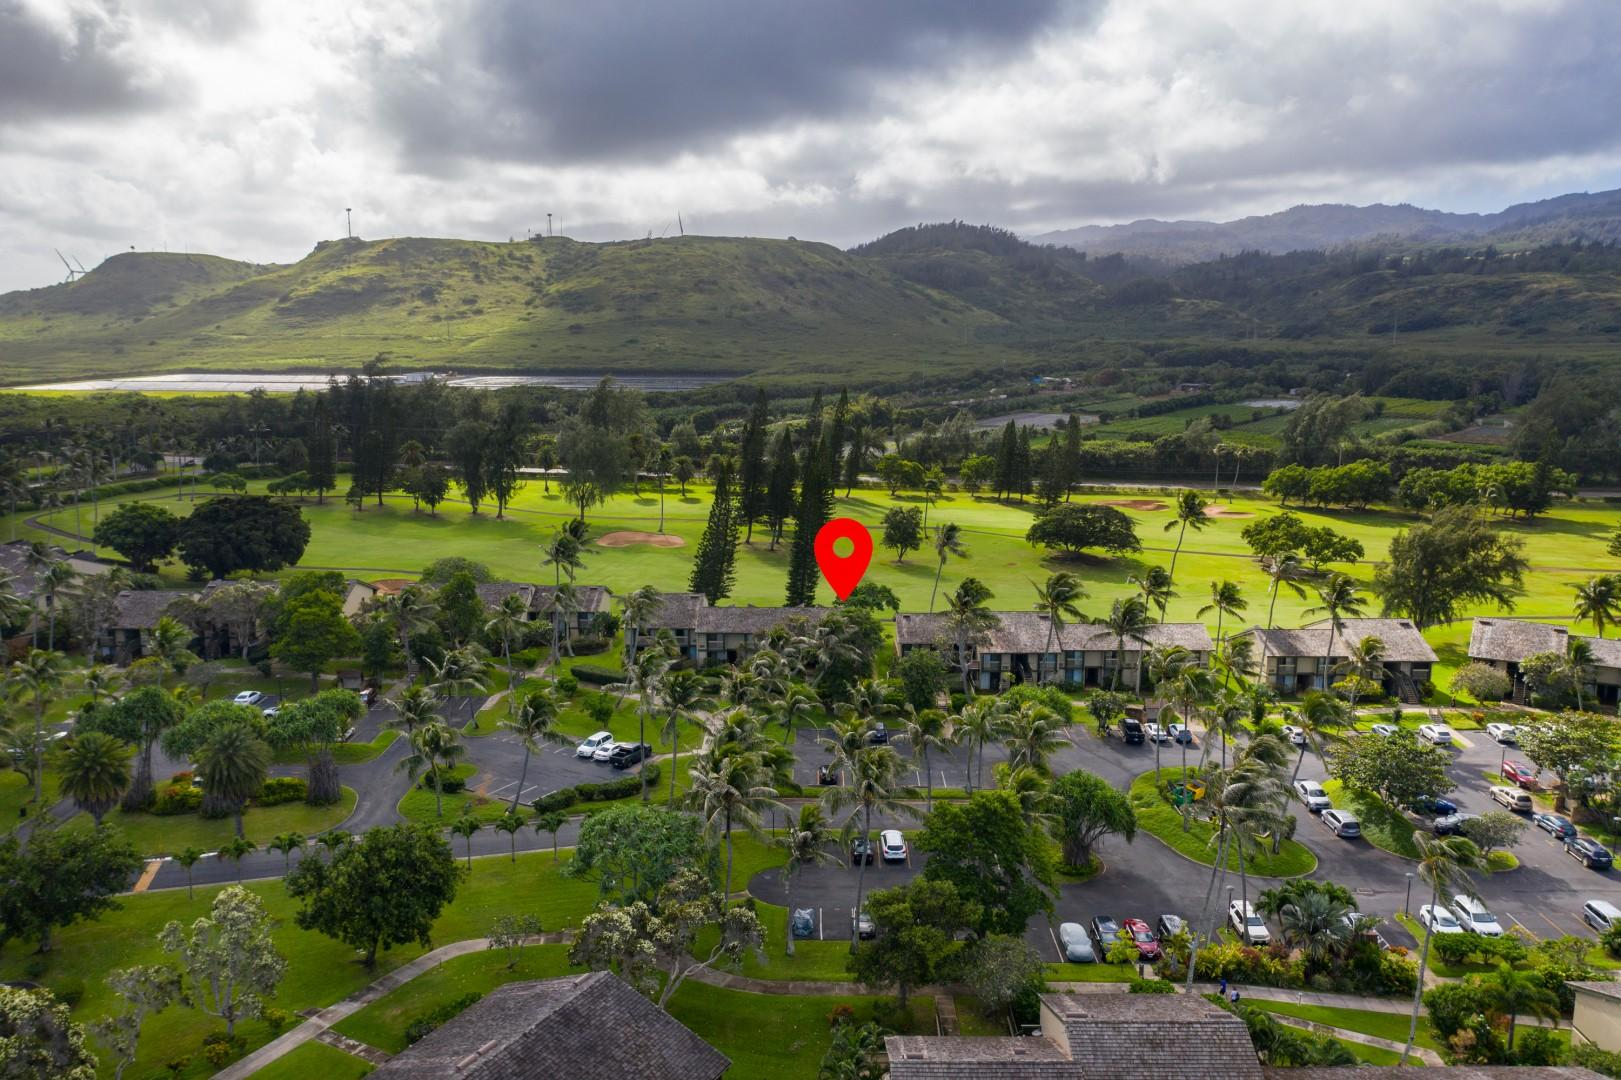 Aerial view of the community, with the Koolau Mountains in the background